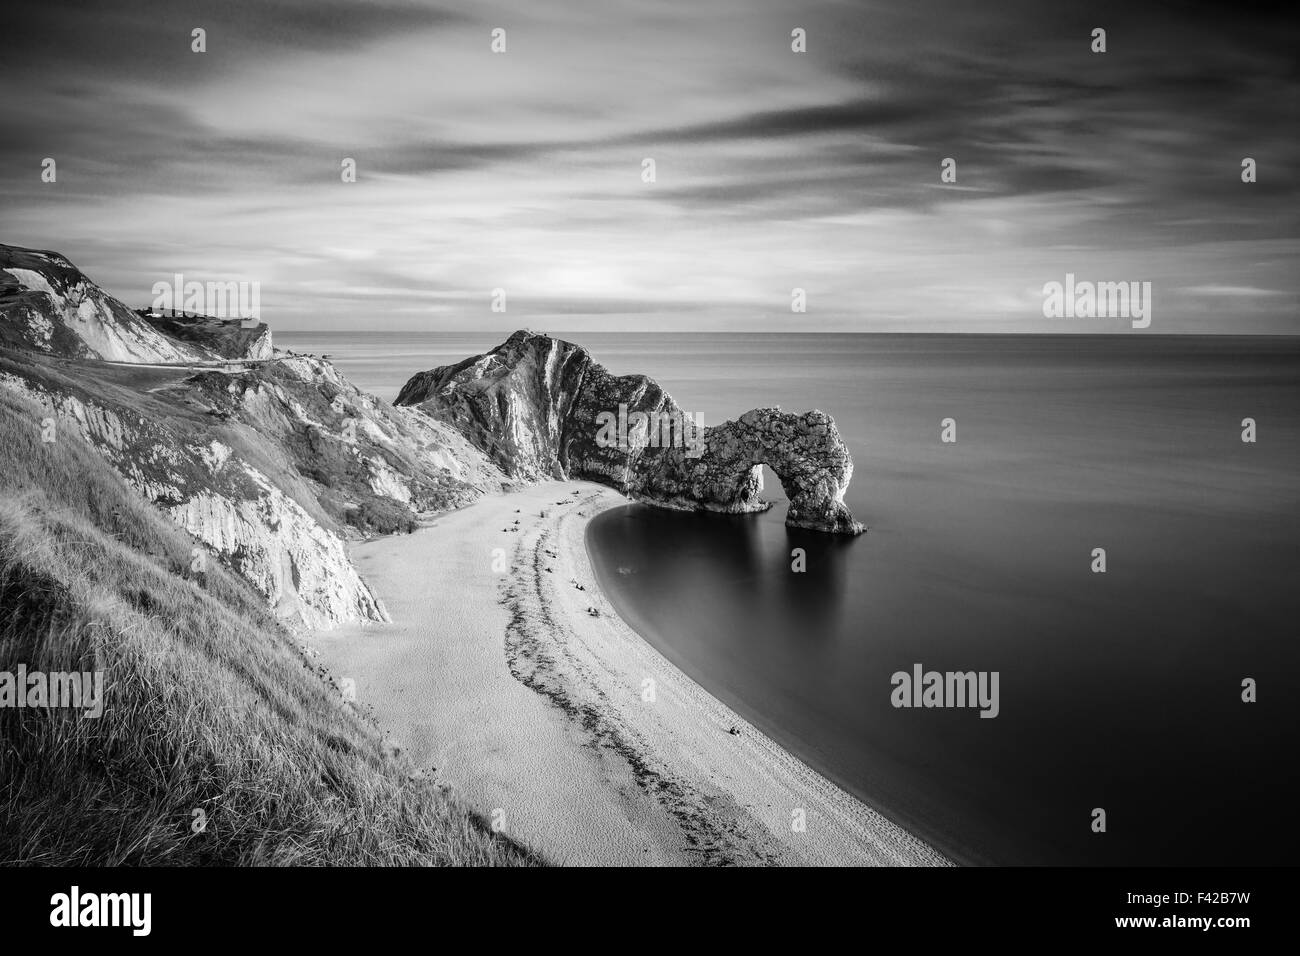 Durdle Door, Jurassic Coast, UNESCO site, Dorset, England, UK - Stock Image